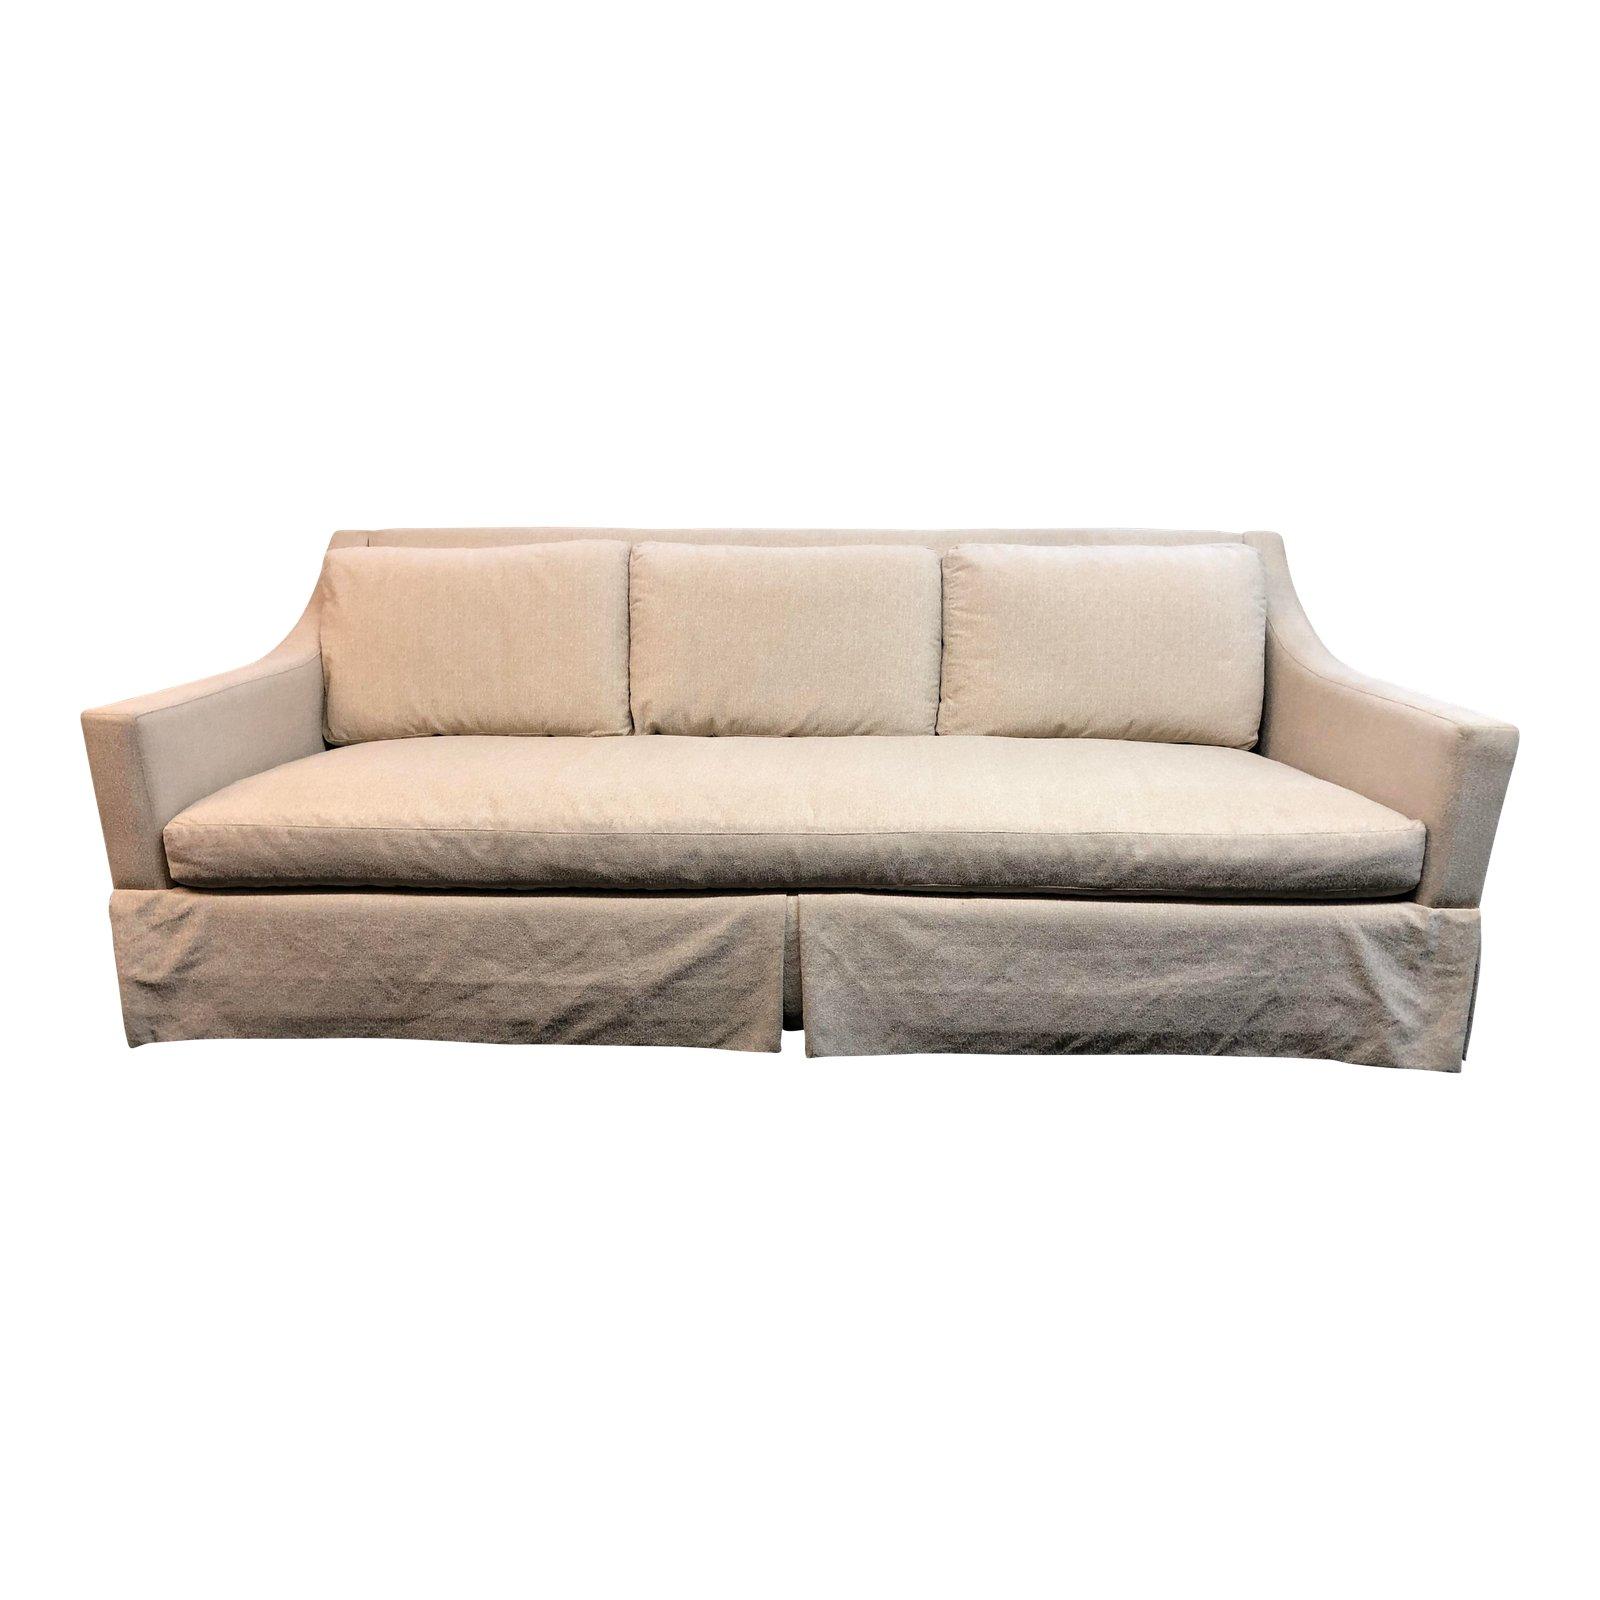 Attrayant Bernhardt Interiors Albion Sofa. Original Price: $2,900.00